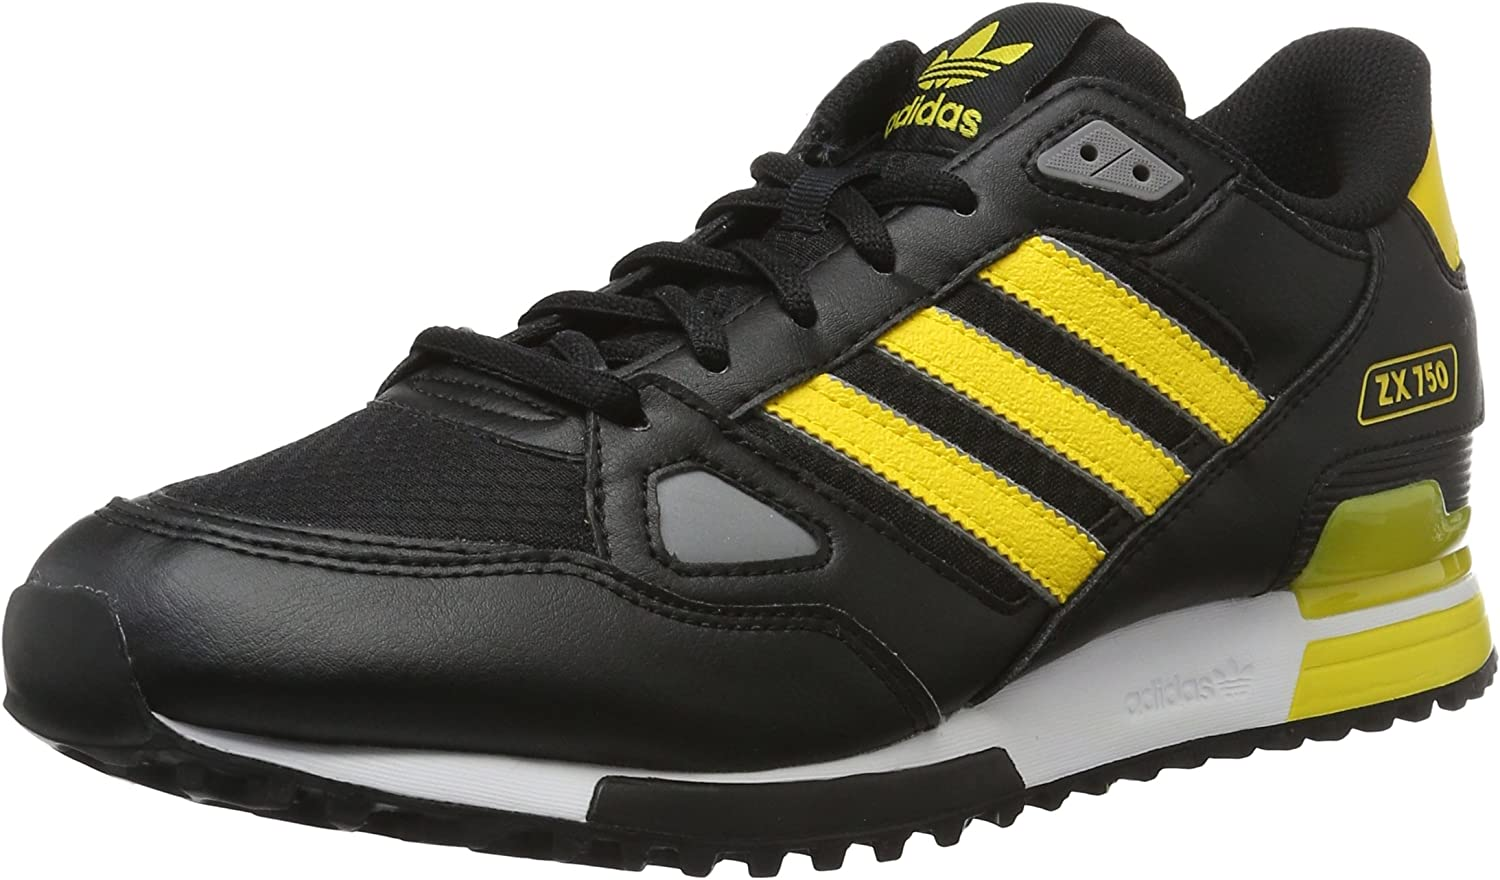 adidas Men's Zx 750 Trainers, White